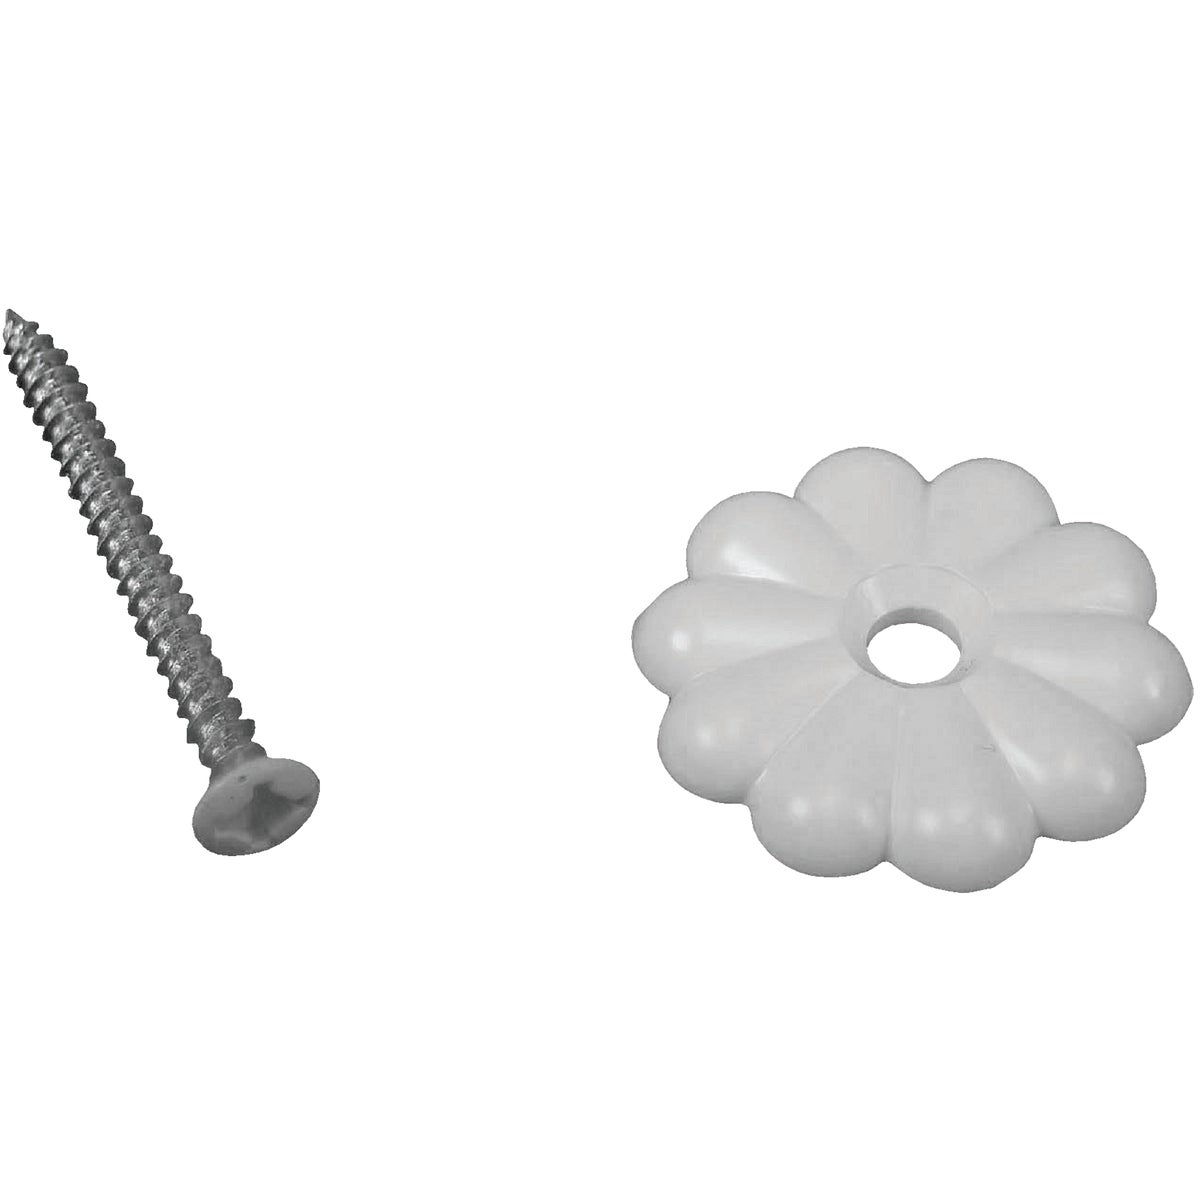 WHITE ROSETTE W/SCREWS - D-138C by U S Hardware